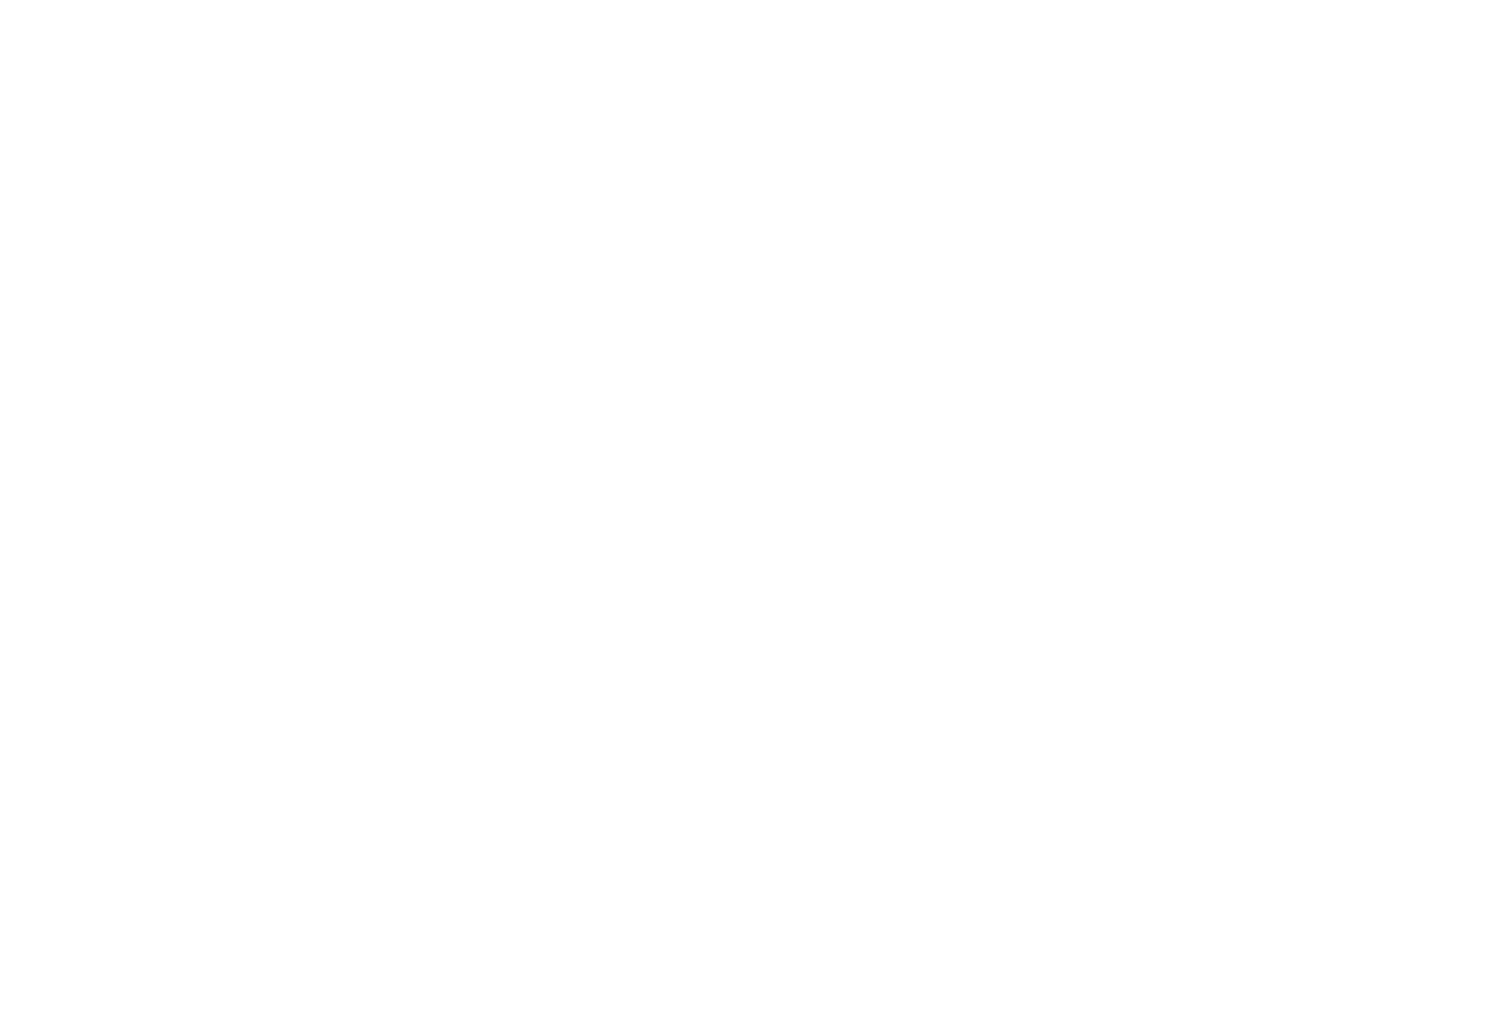 True Pacific Insurance Services